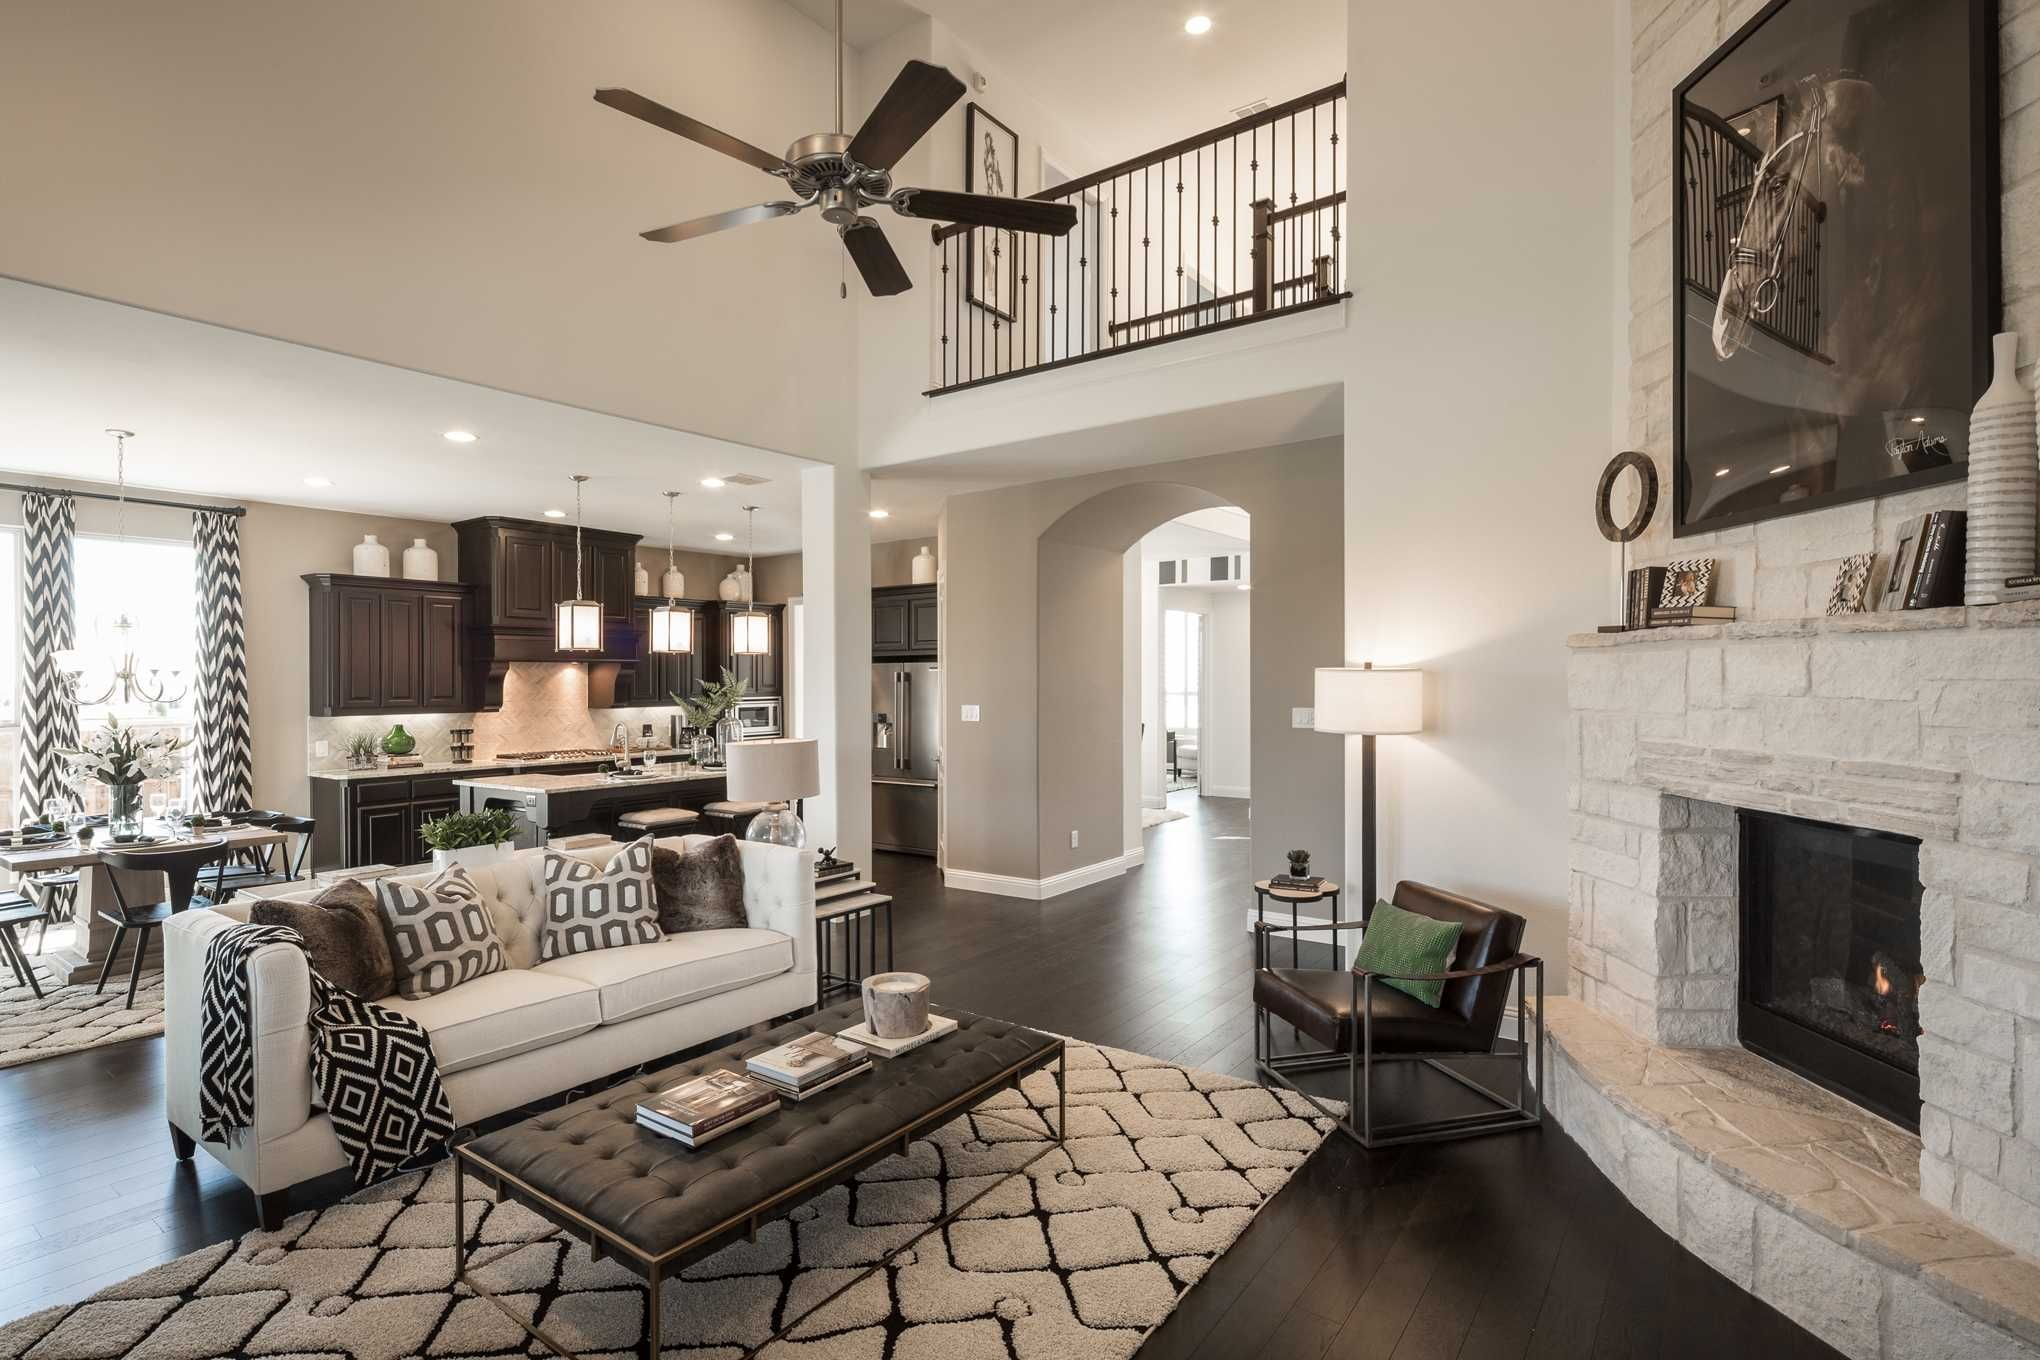 Highland Homes Plan 267 Model Home In Dallas Fort Worth Texas Mustang Lakes 74s Community Livingroom New Home Builders Home Highland Homes